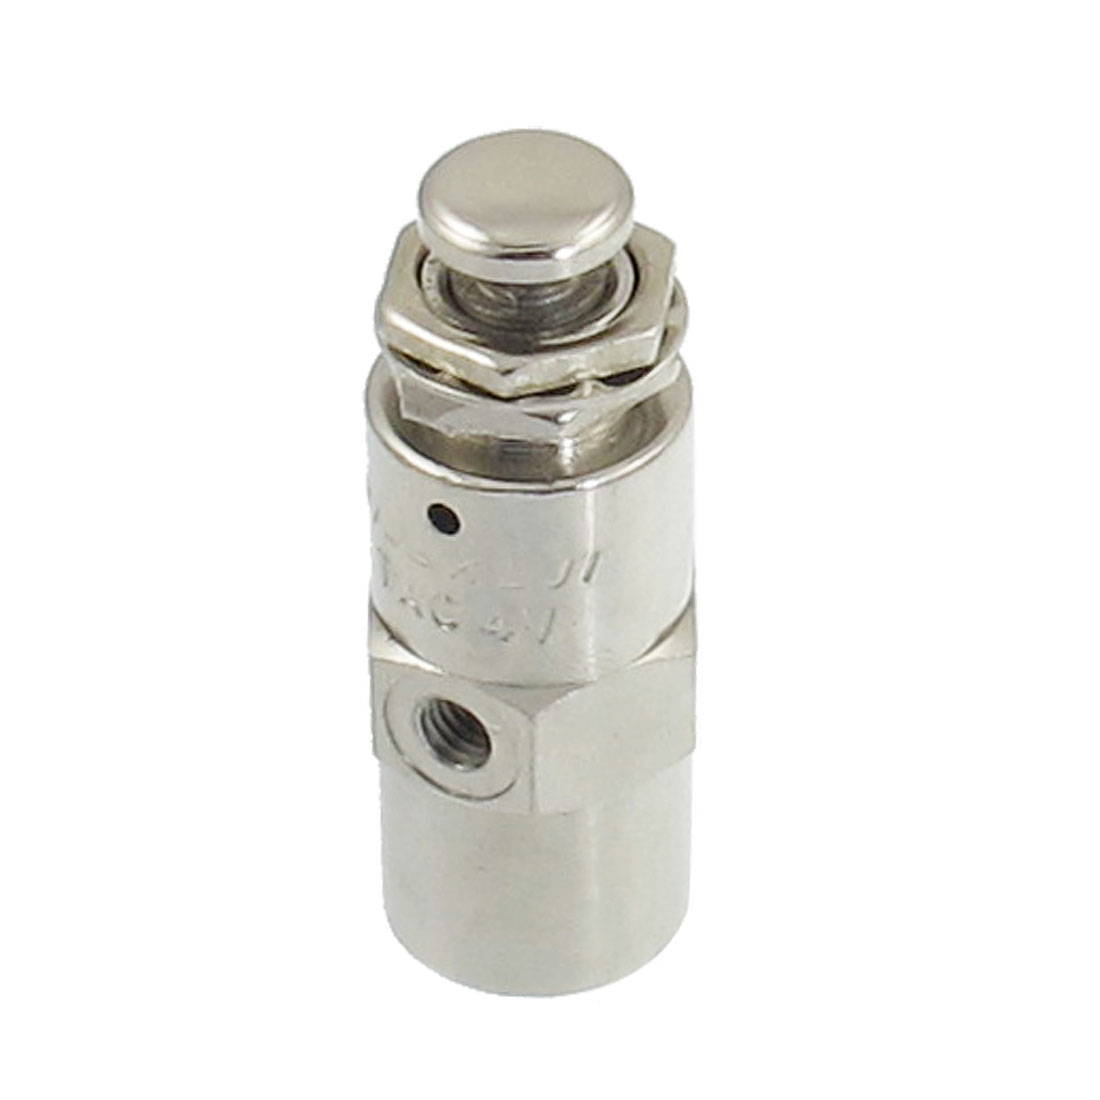 4.5mm Thread 2 Position 5 Way Cylindrical Flat Button Air Pneumatic Valve